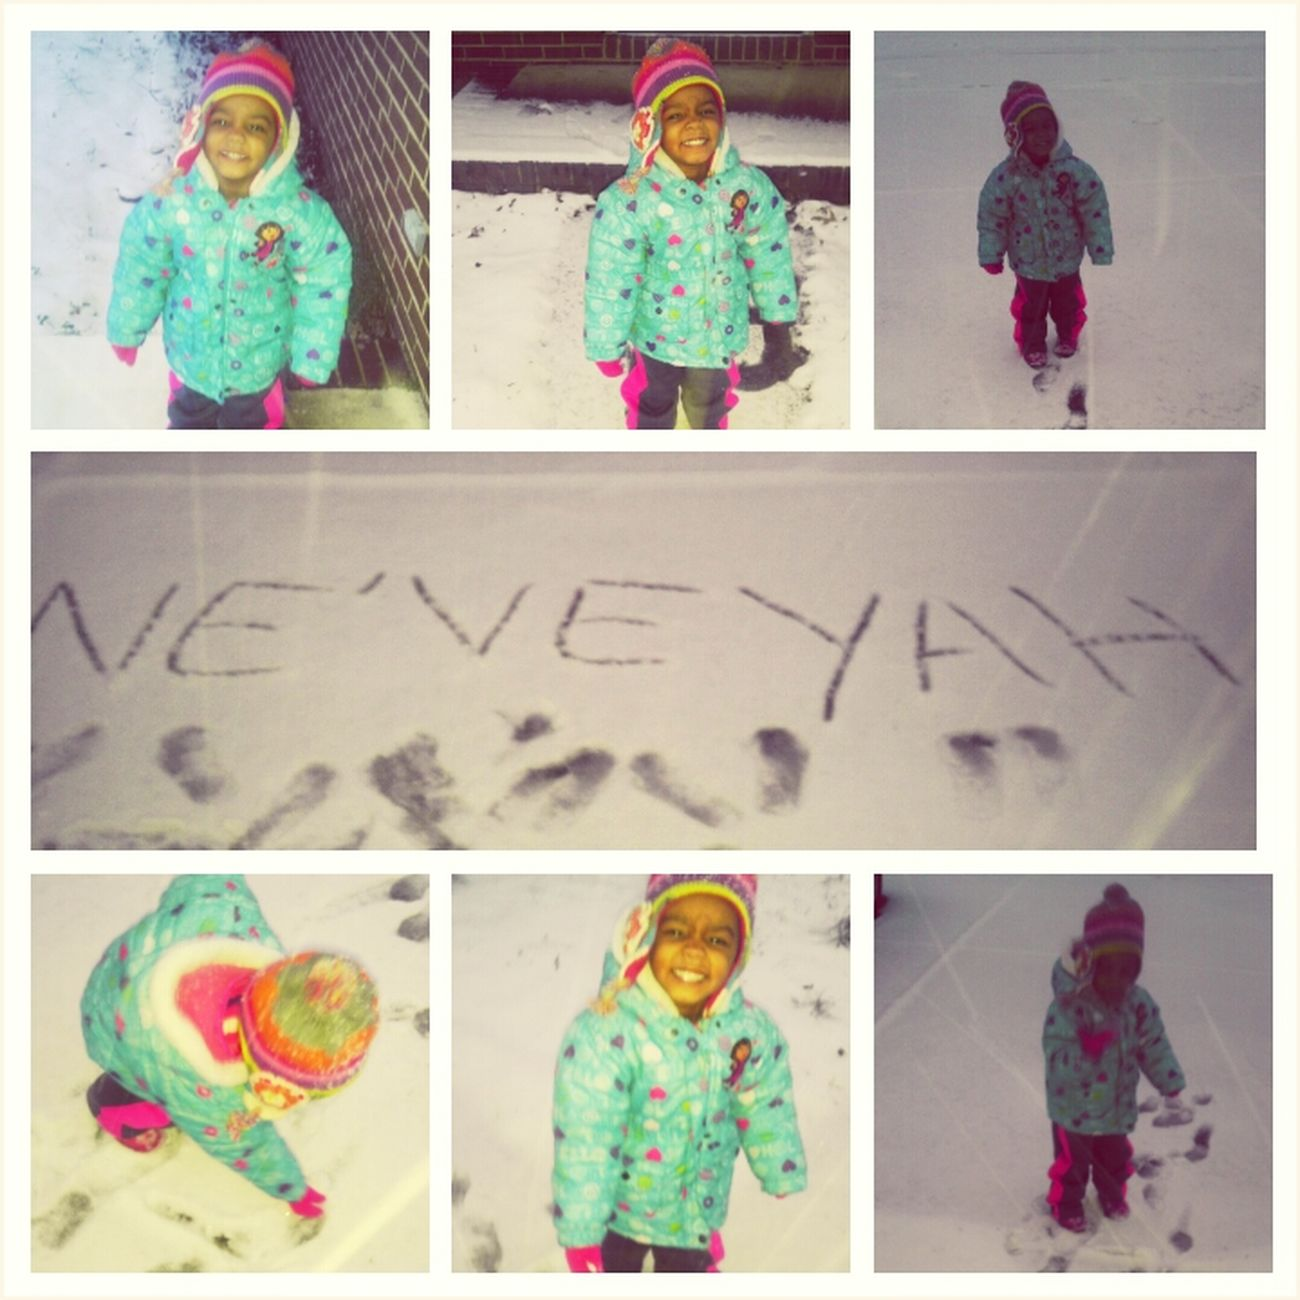 playing in the snow earlier